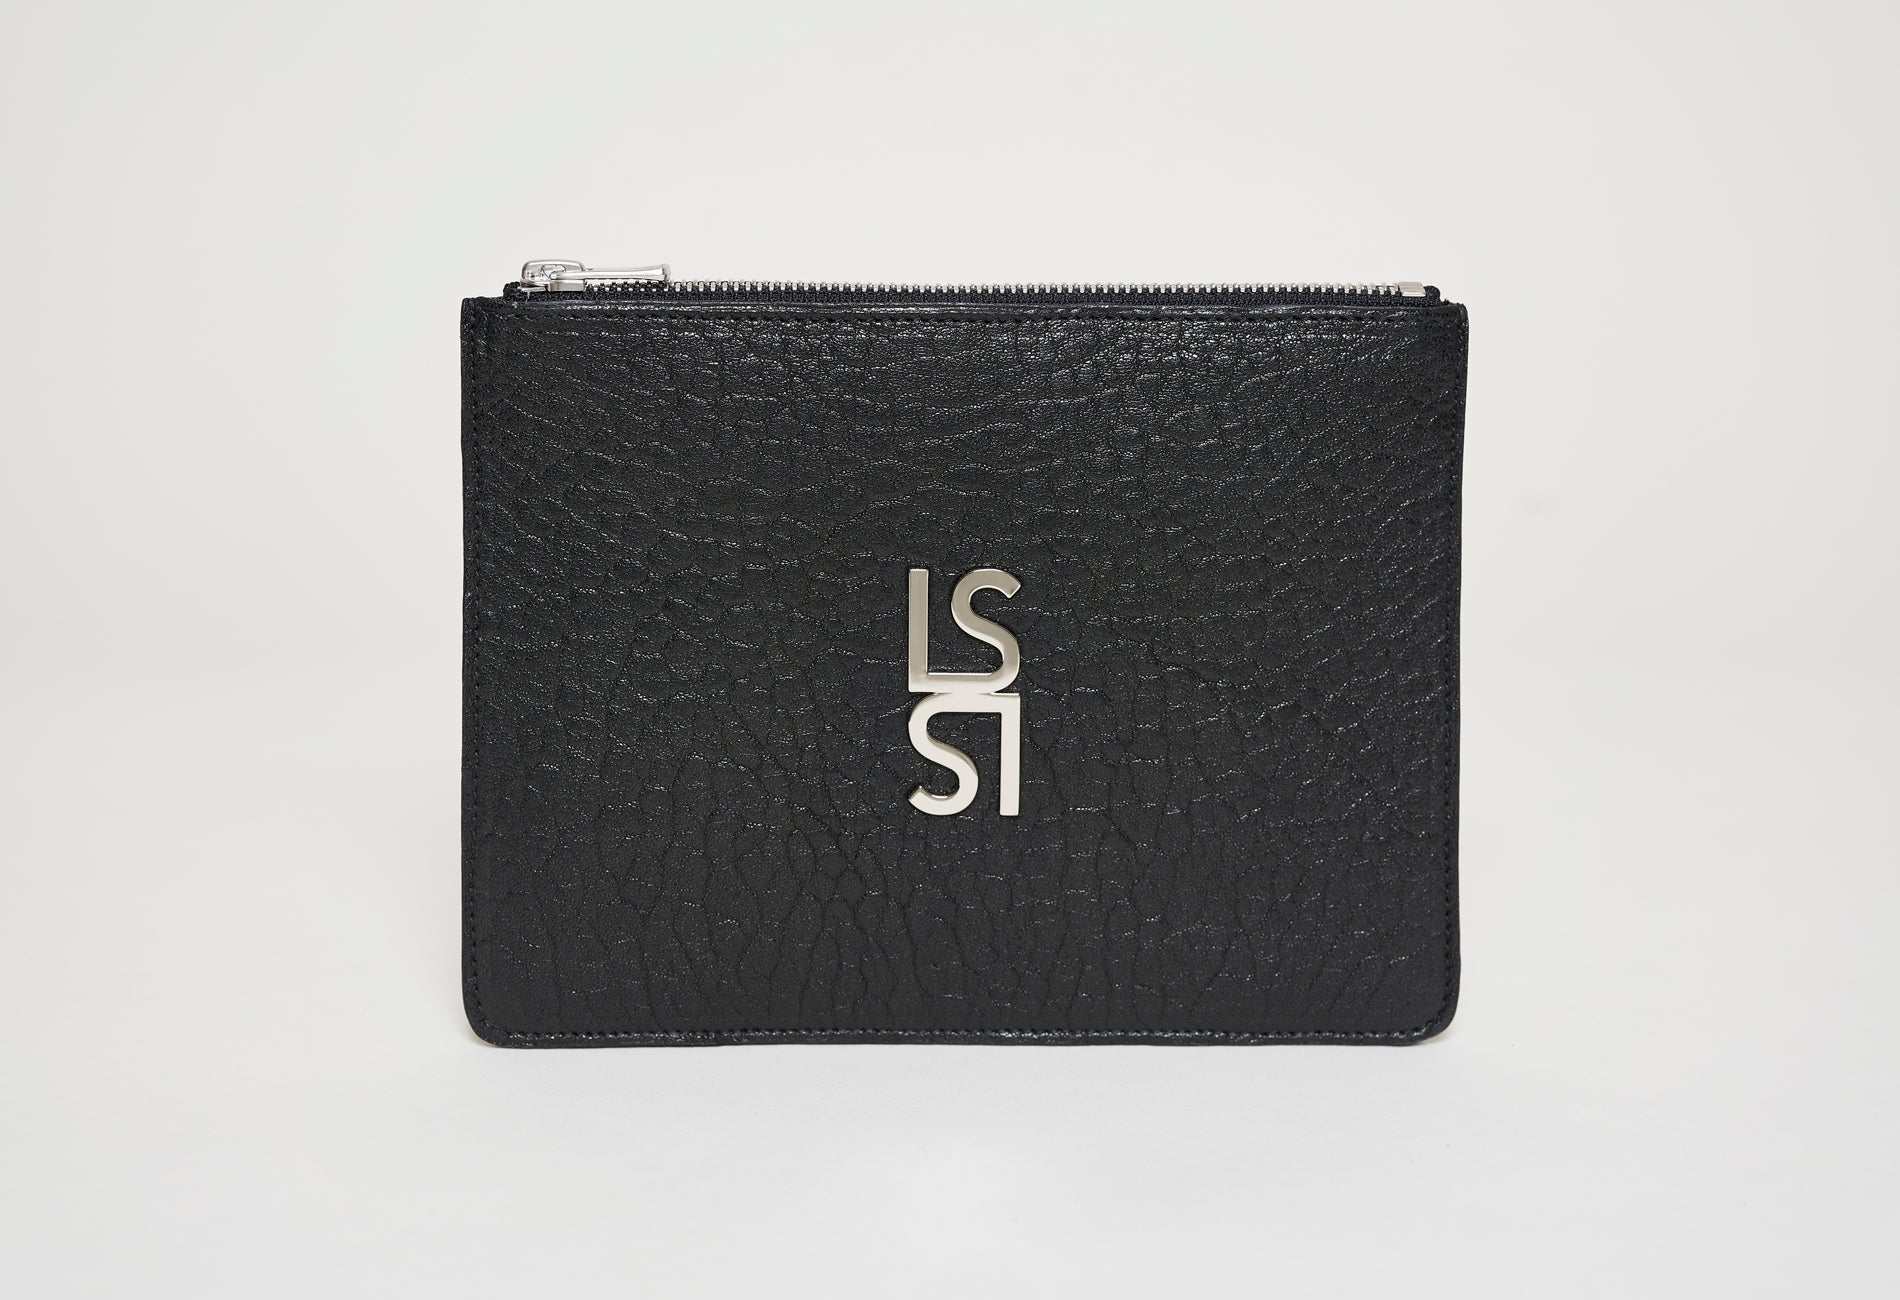 Sculpture Pouch - Grained Leather